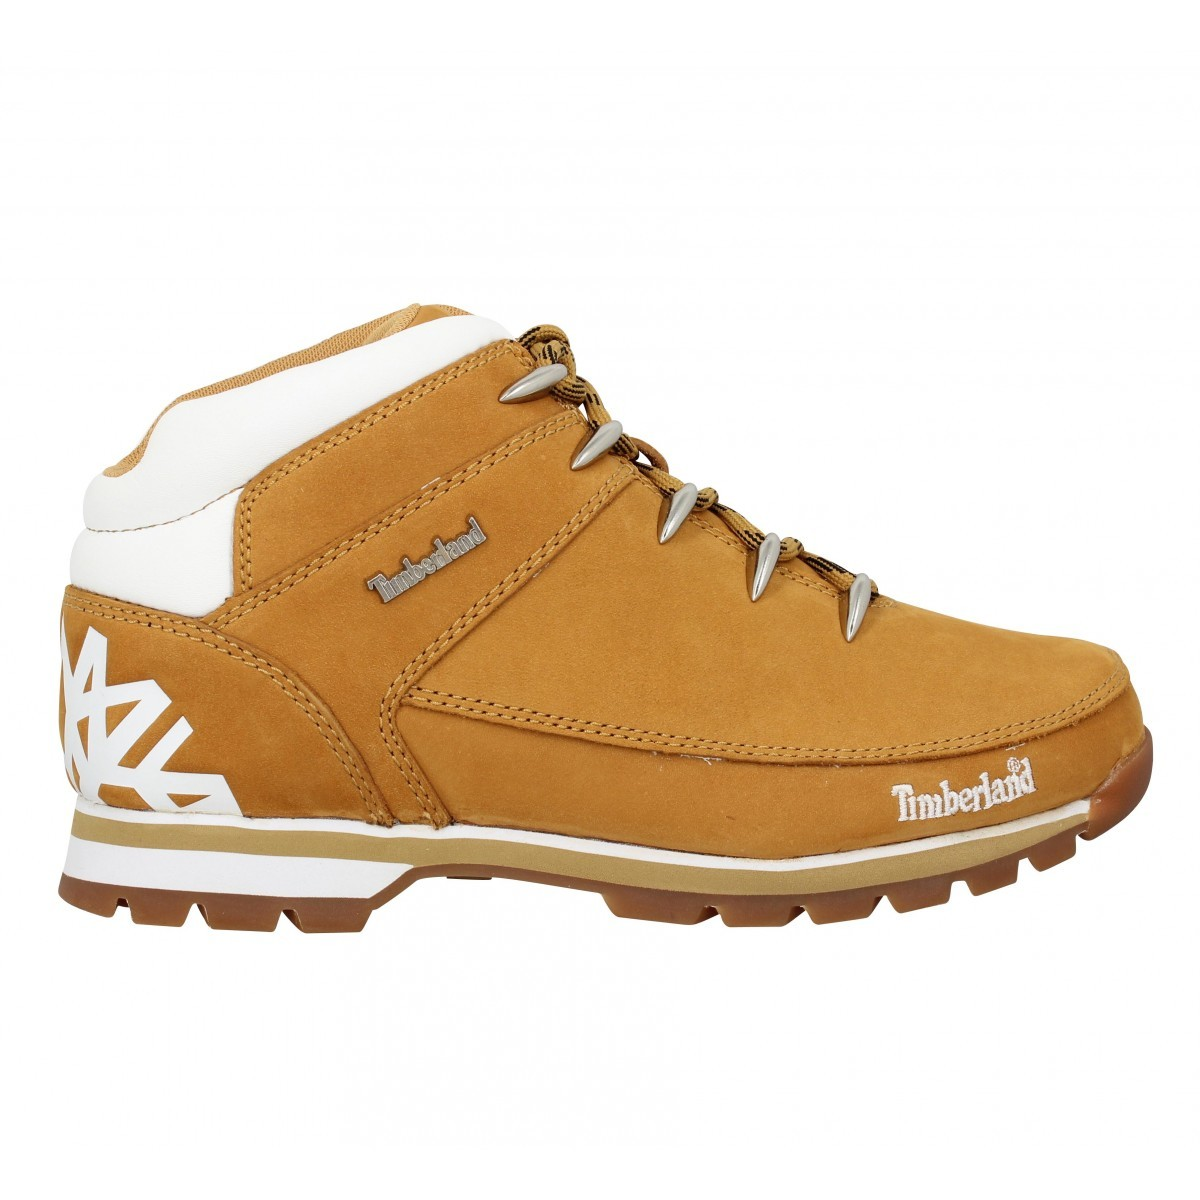 Euro Sprint velours Homme-41,5-Ocre + Blanc